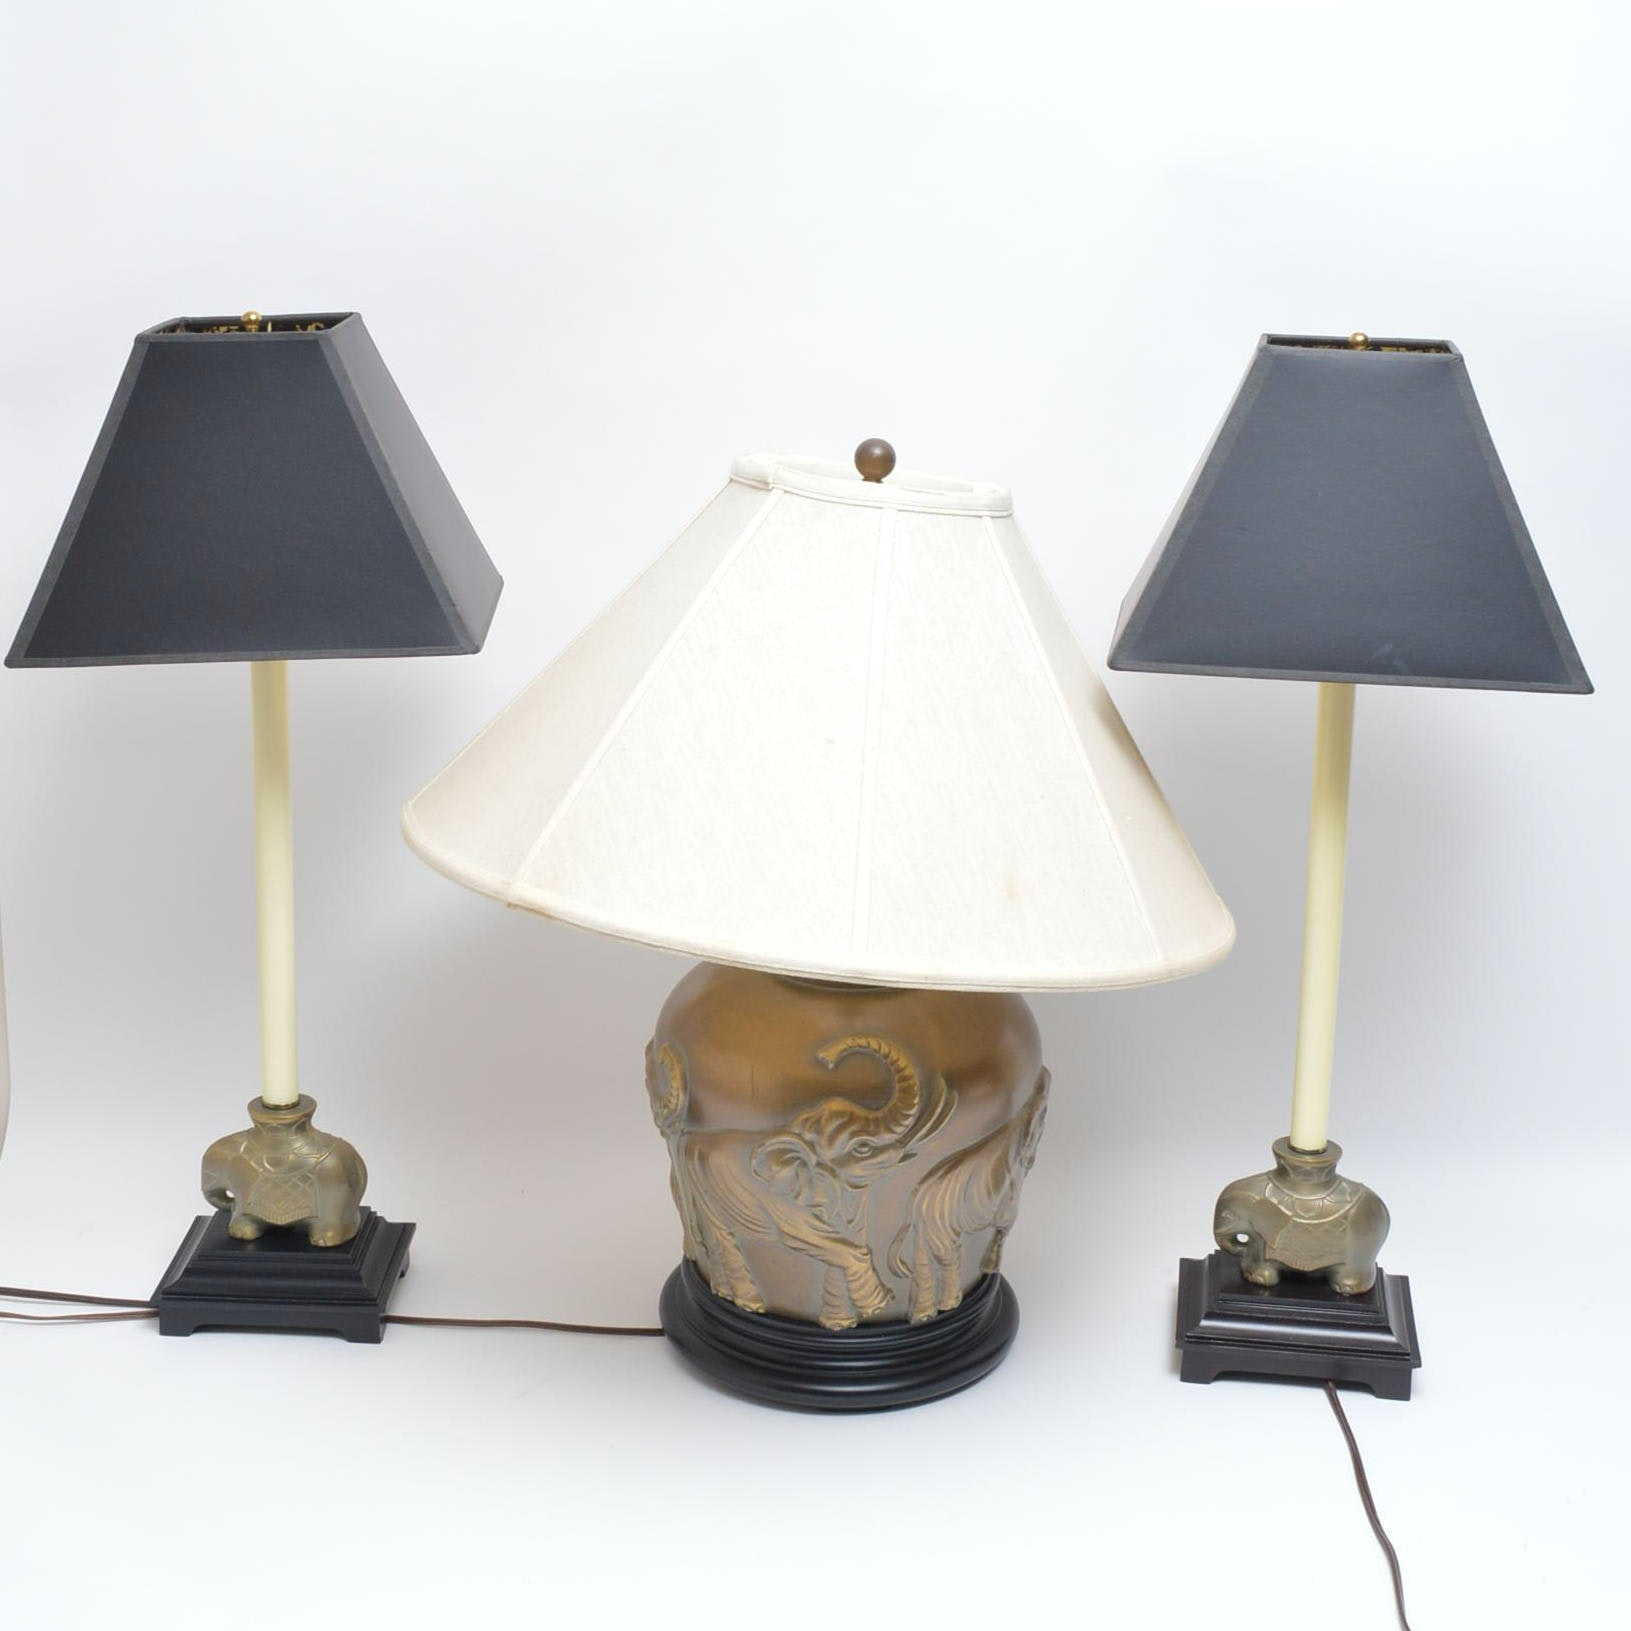 Elephant Themed Table Lamps